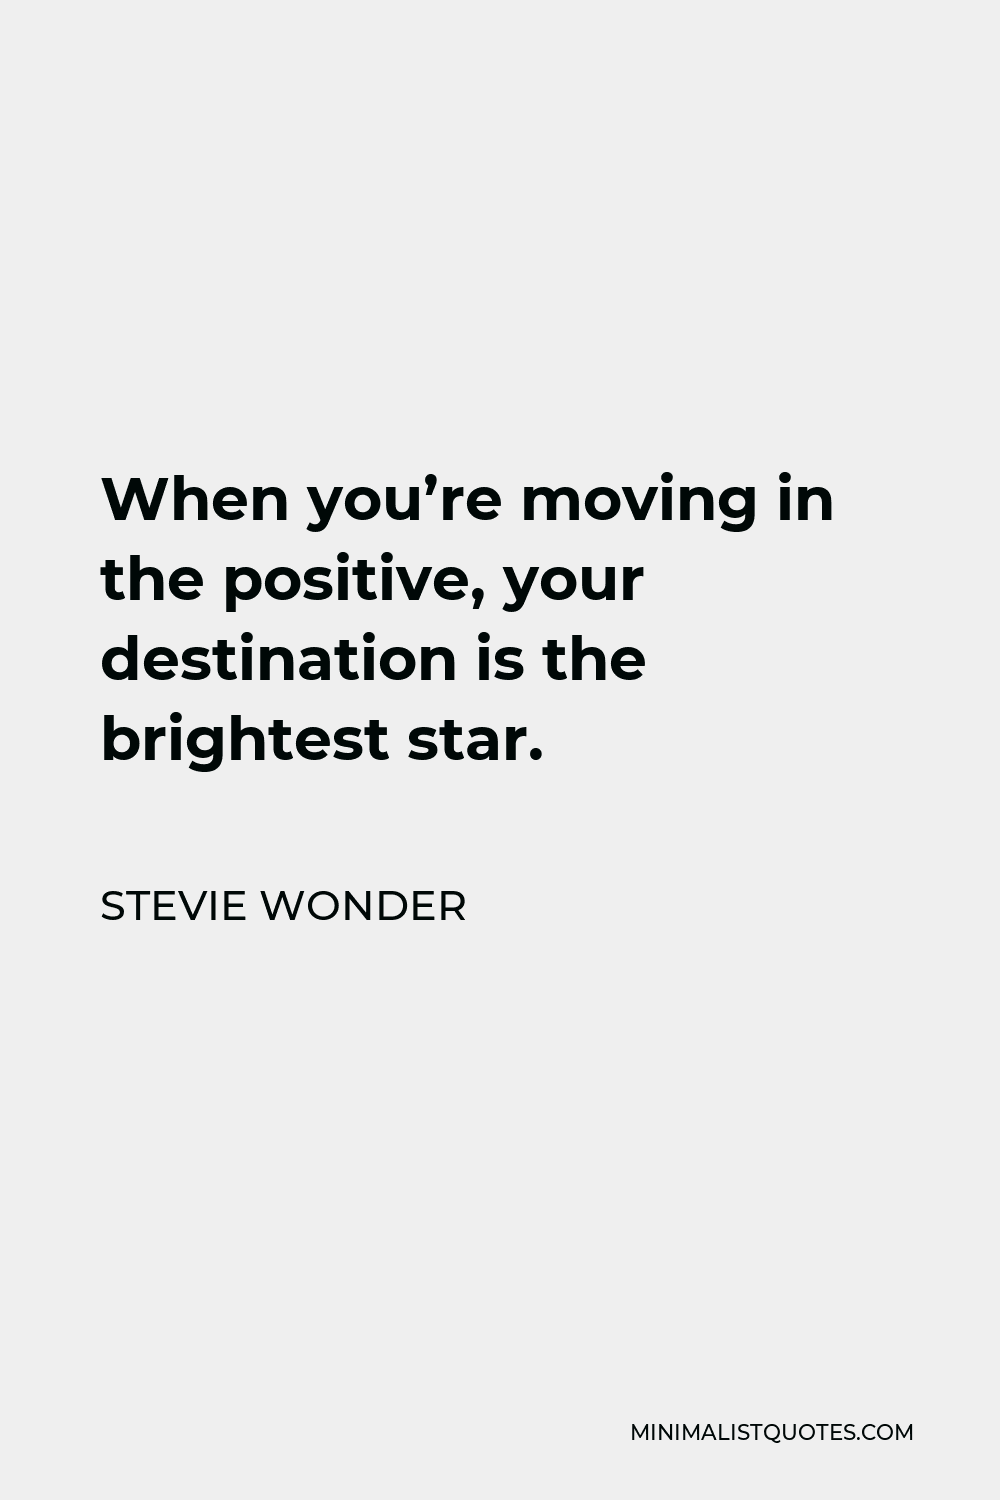 Stevie Wonder Quote - When you're moving in the positive, your destination is the brightest star.